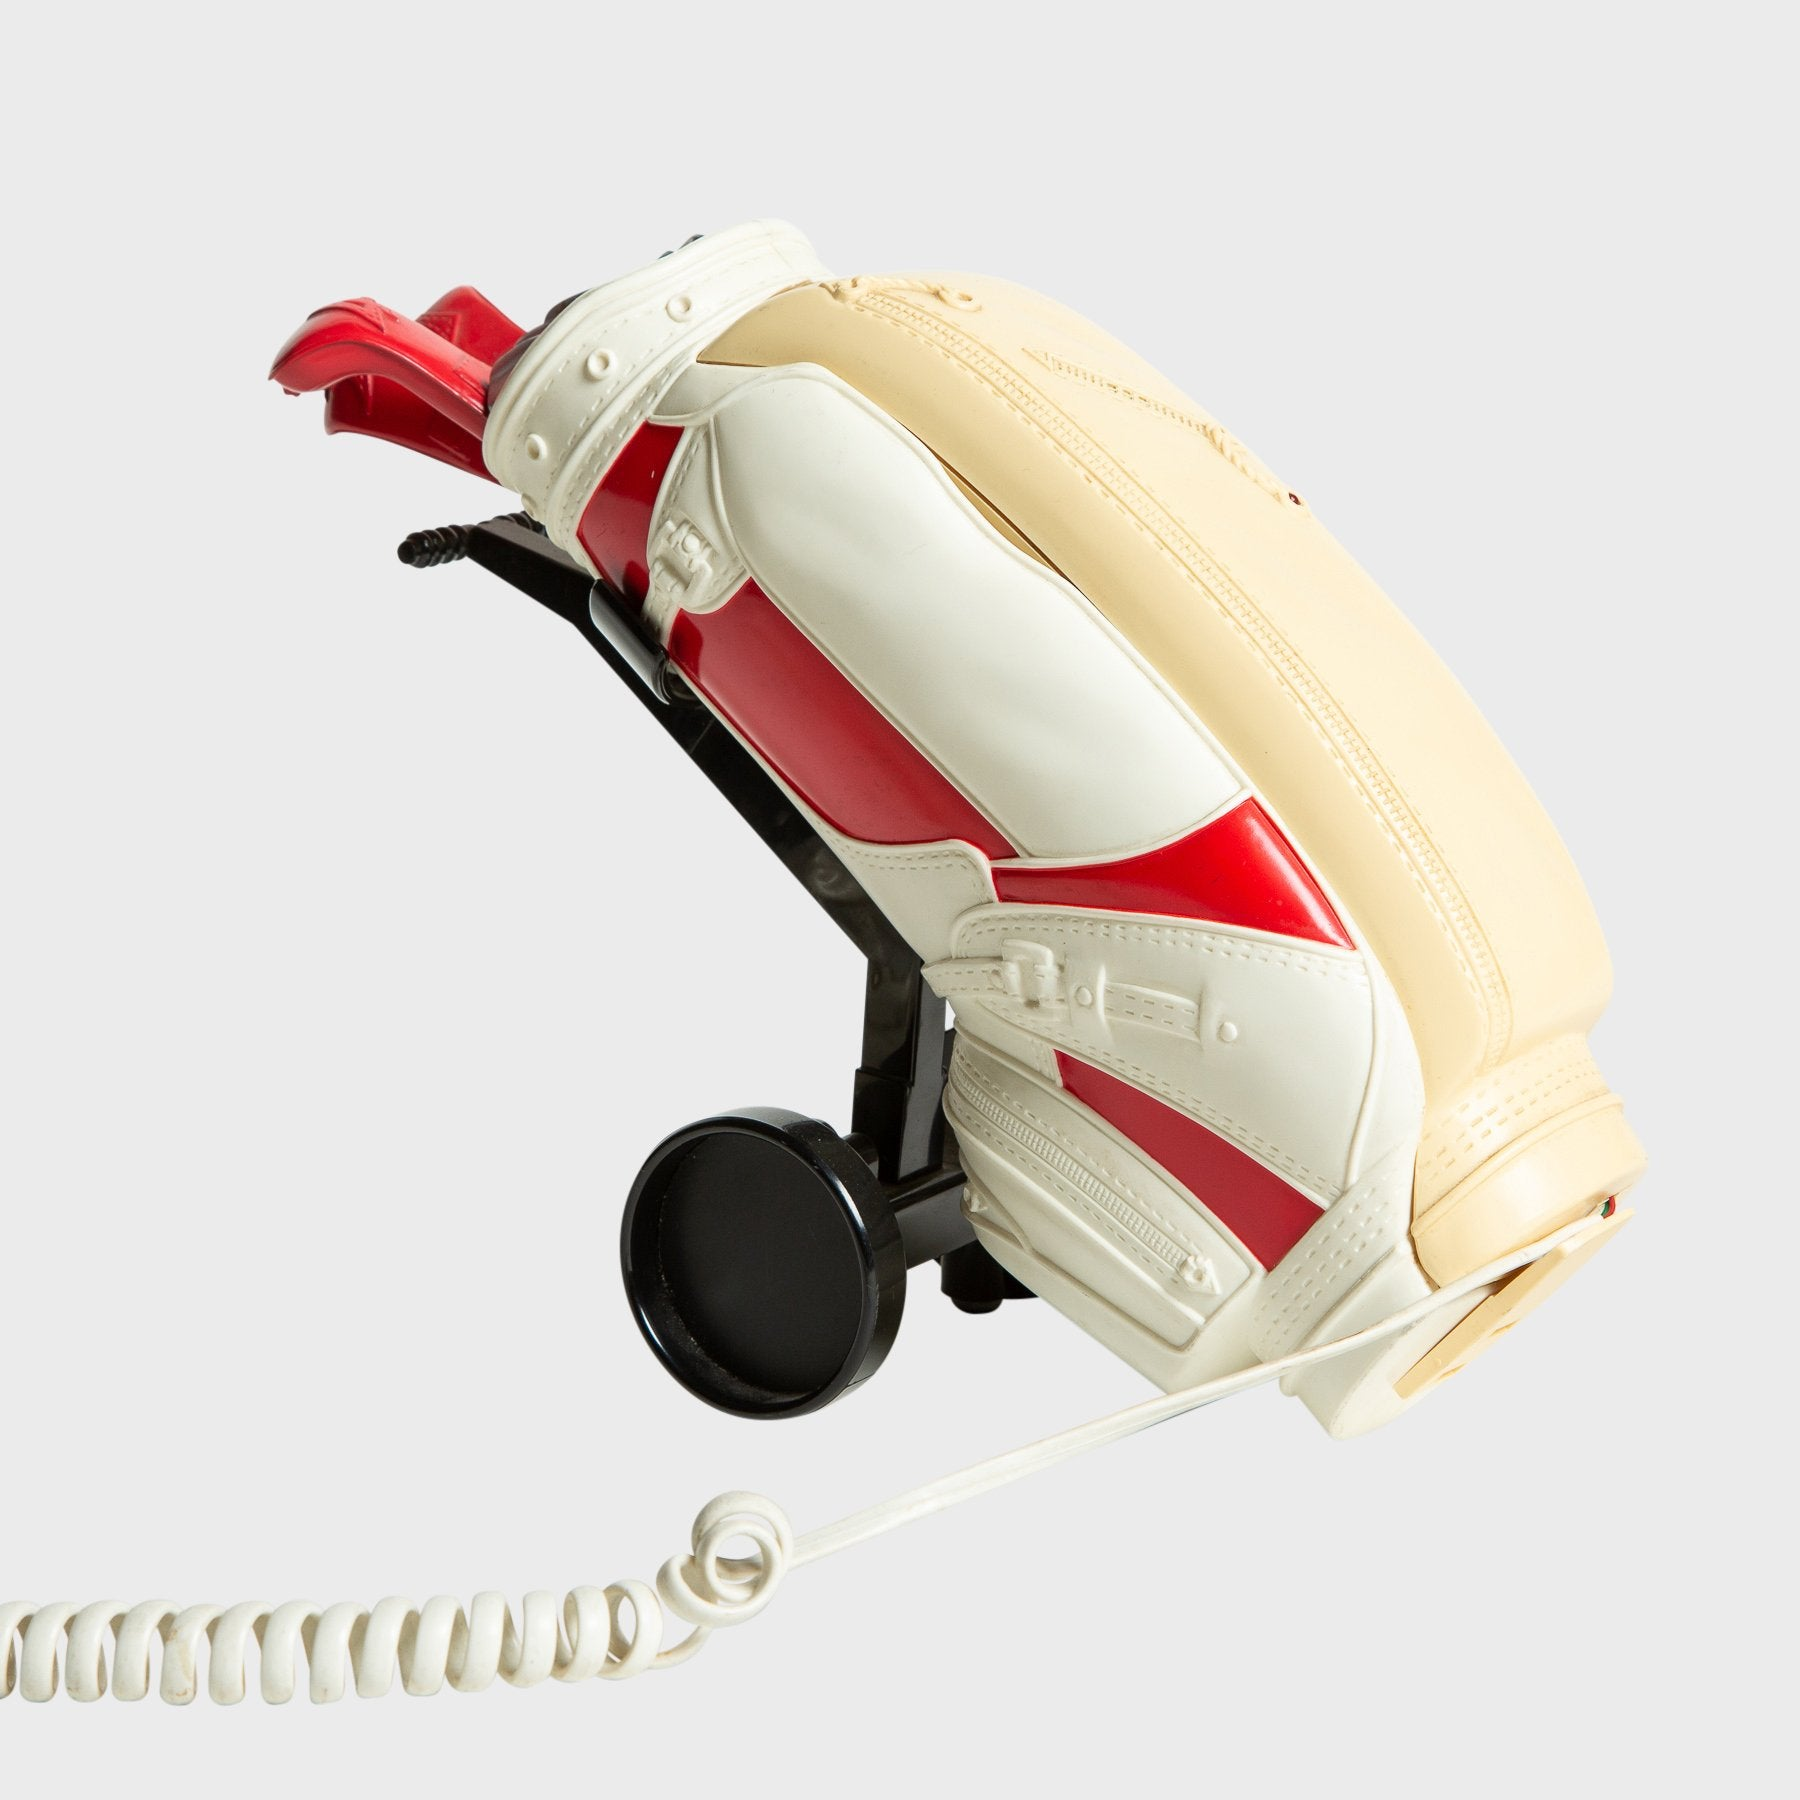 MAXFIELD PRIVATE COLLECTION | 1980'S RED GOLF MOTIF PHONE